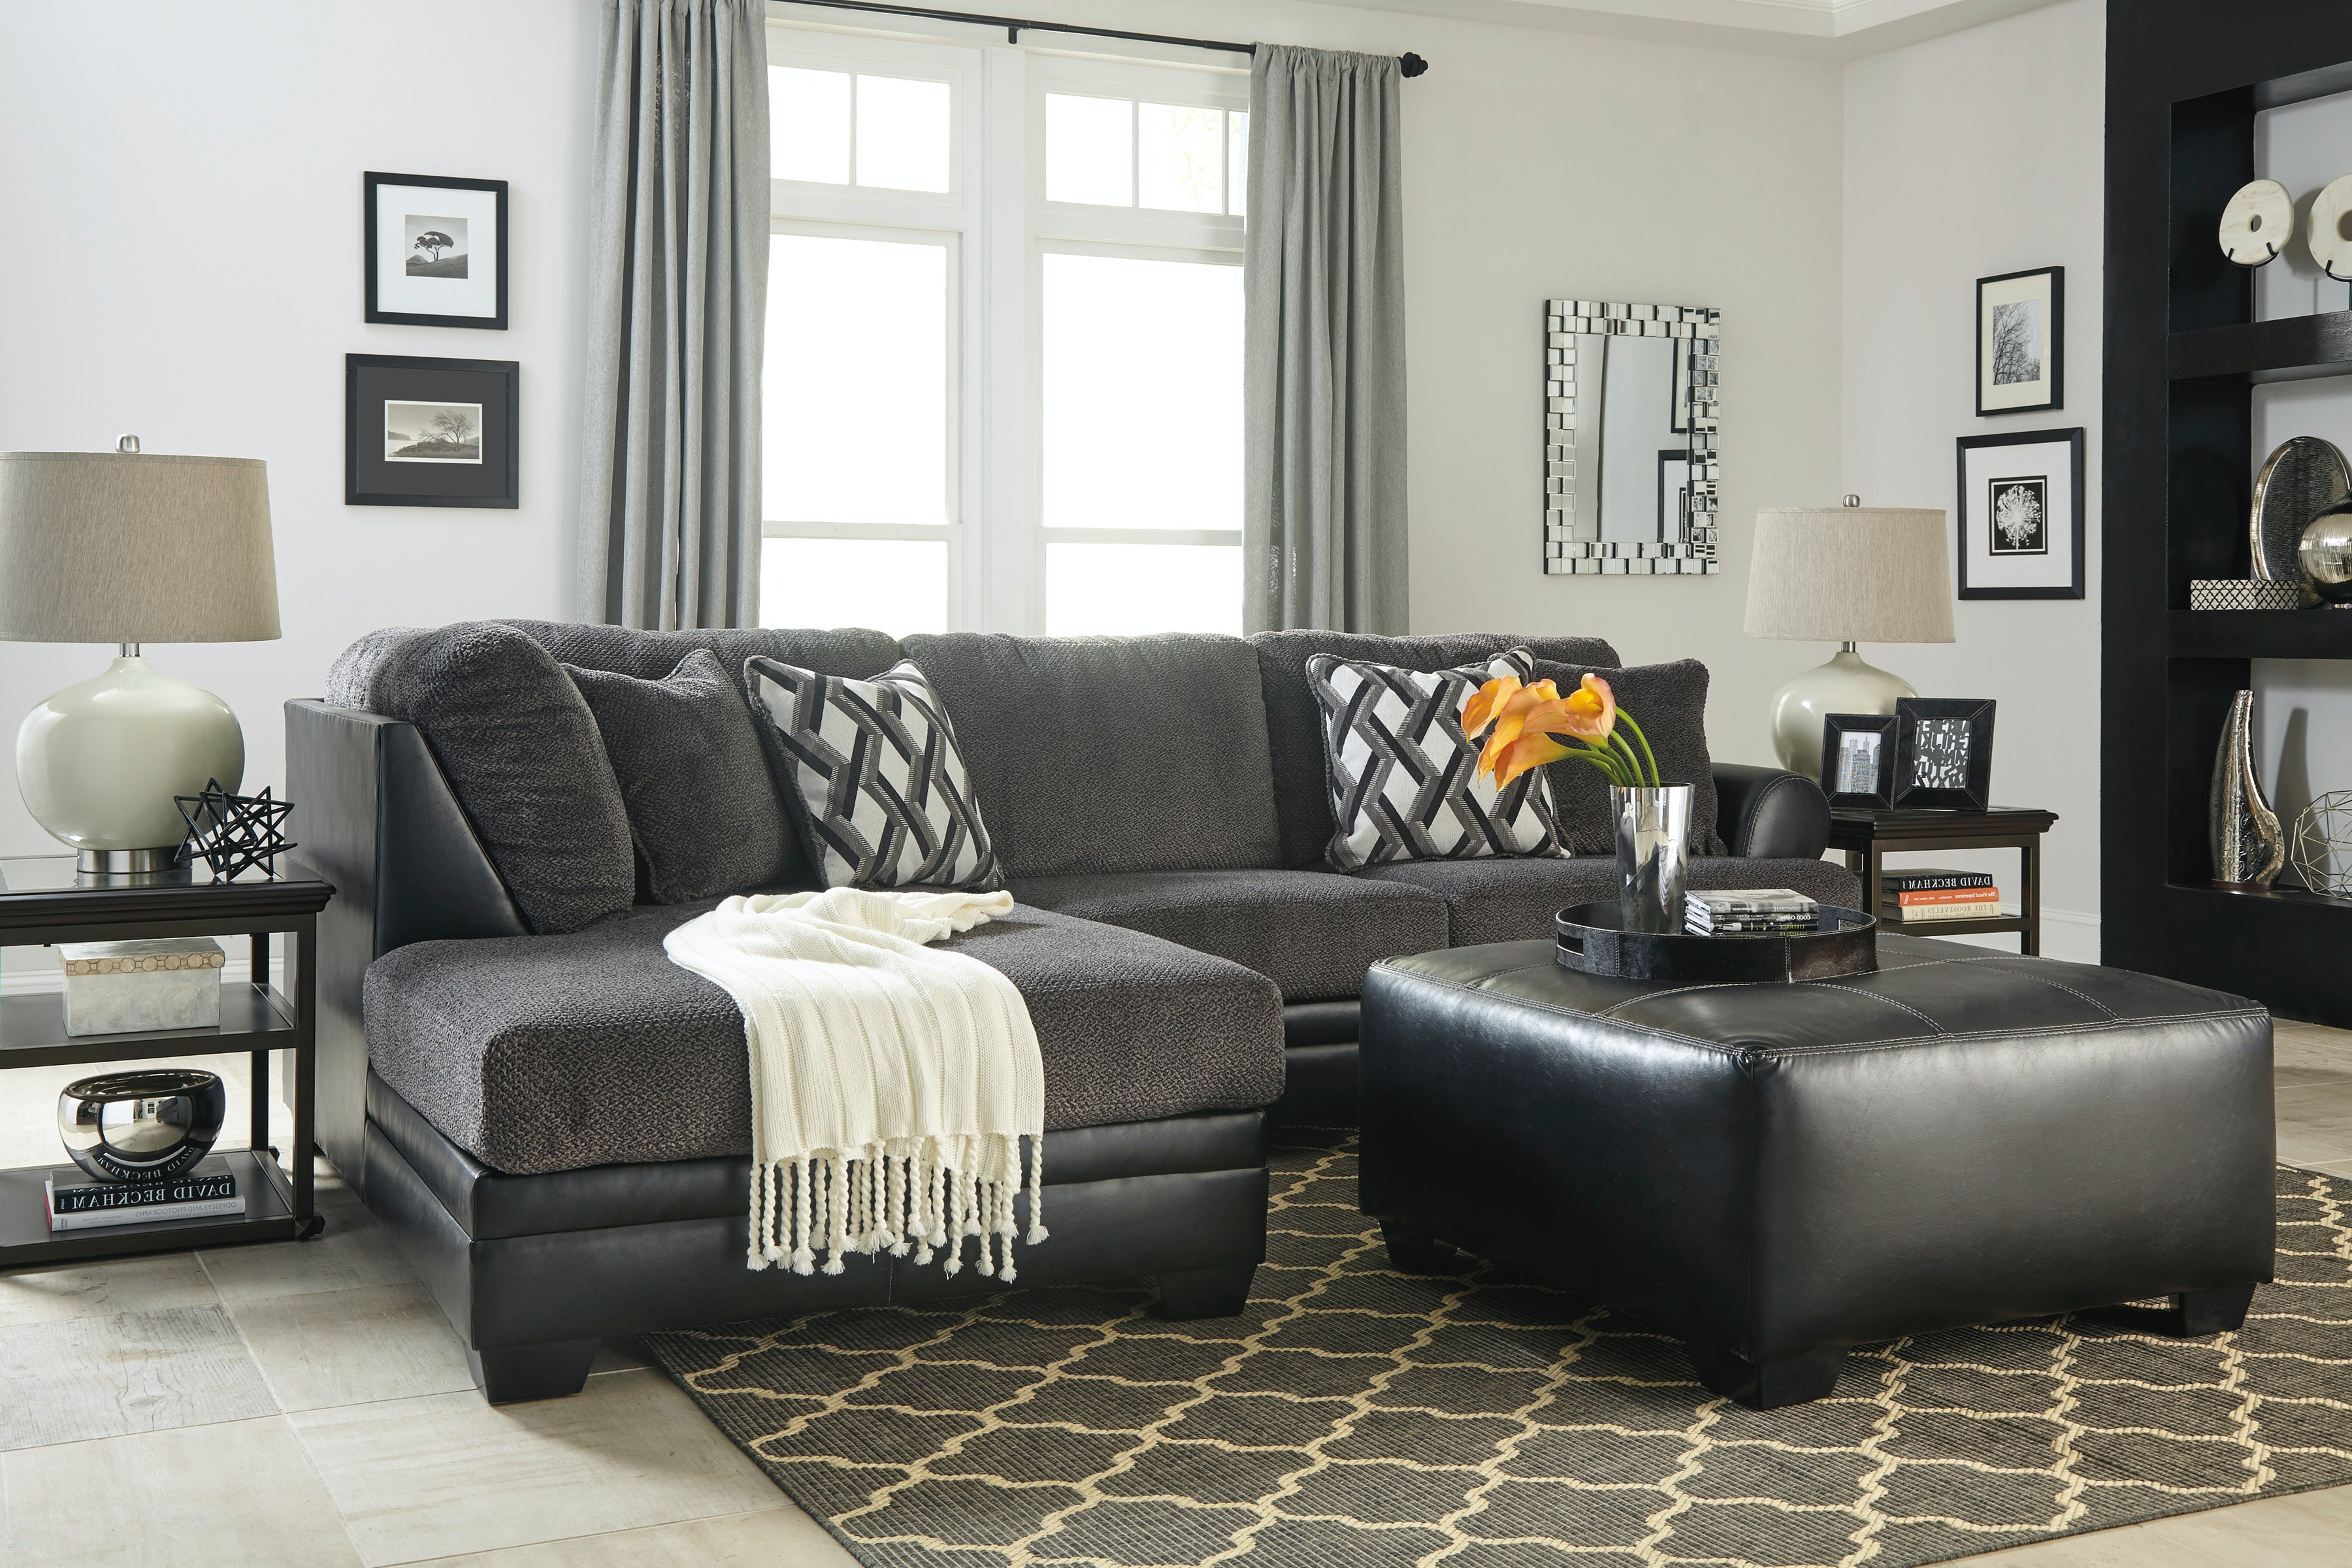 Signature Design by Ashley 2pc Left Chaise Sectional 32202-16/67 : left chaise sectional - Sectionals, Sofas & Couches